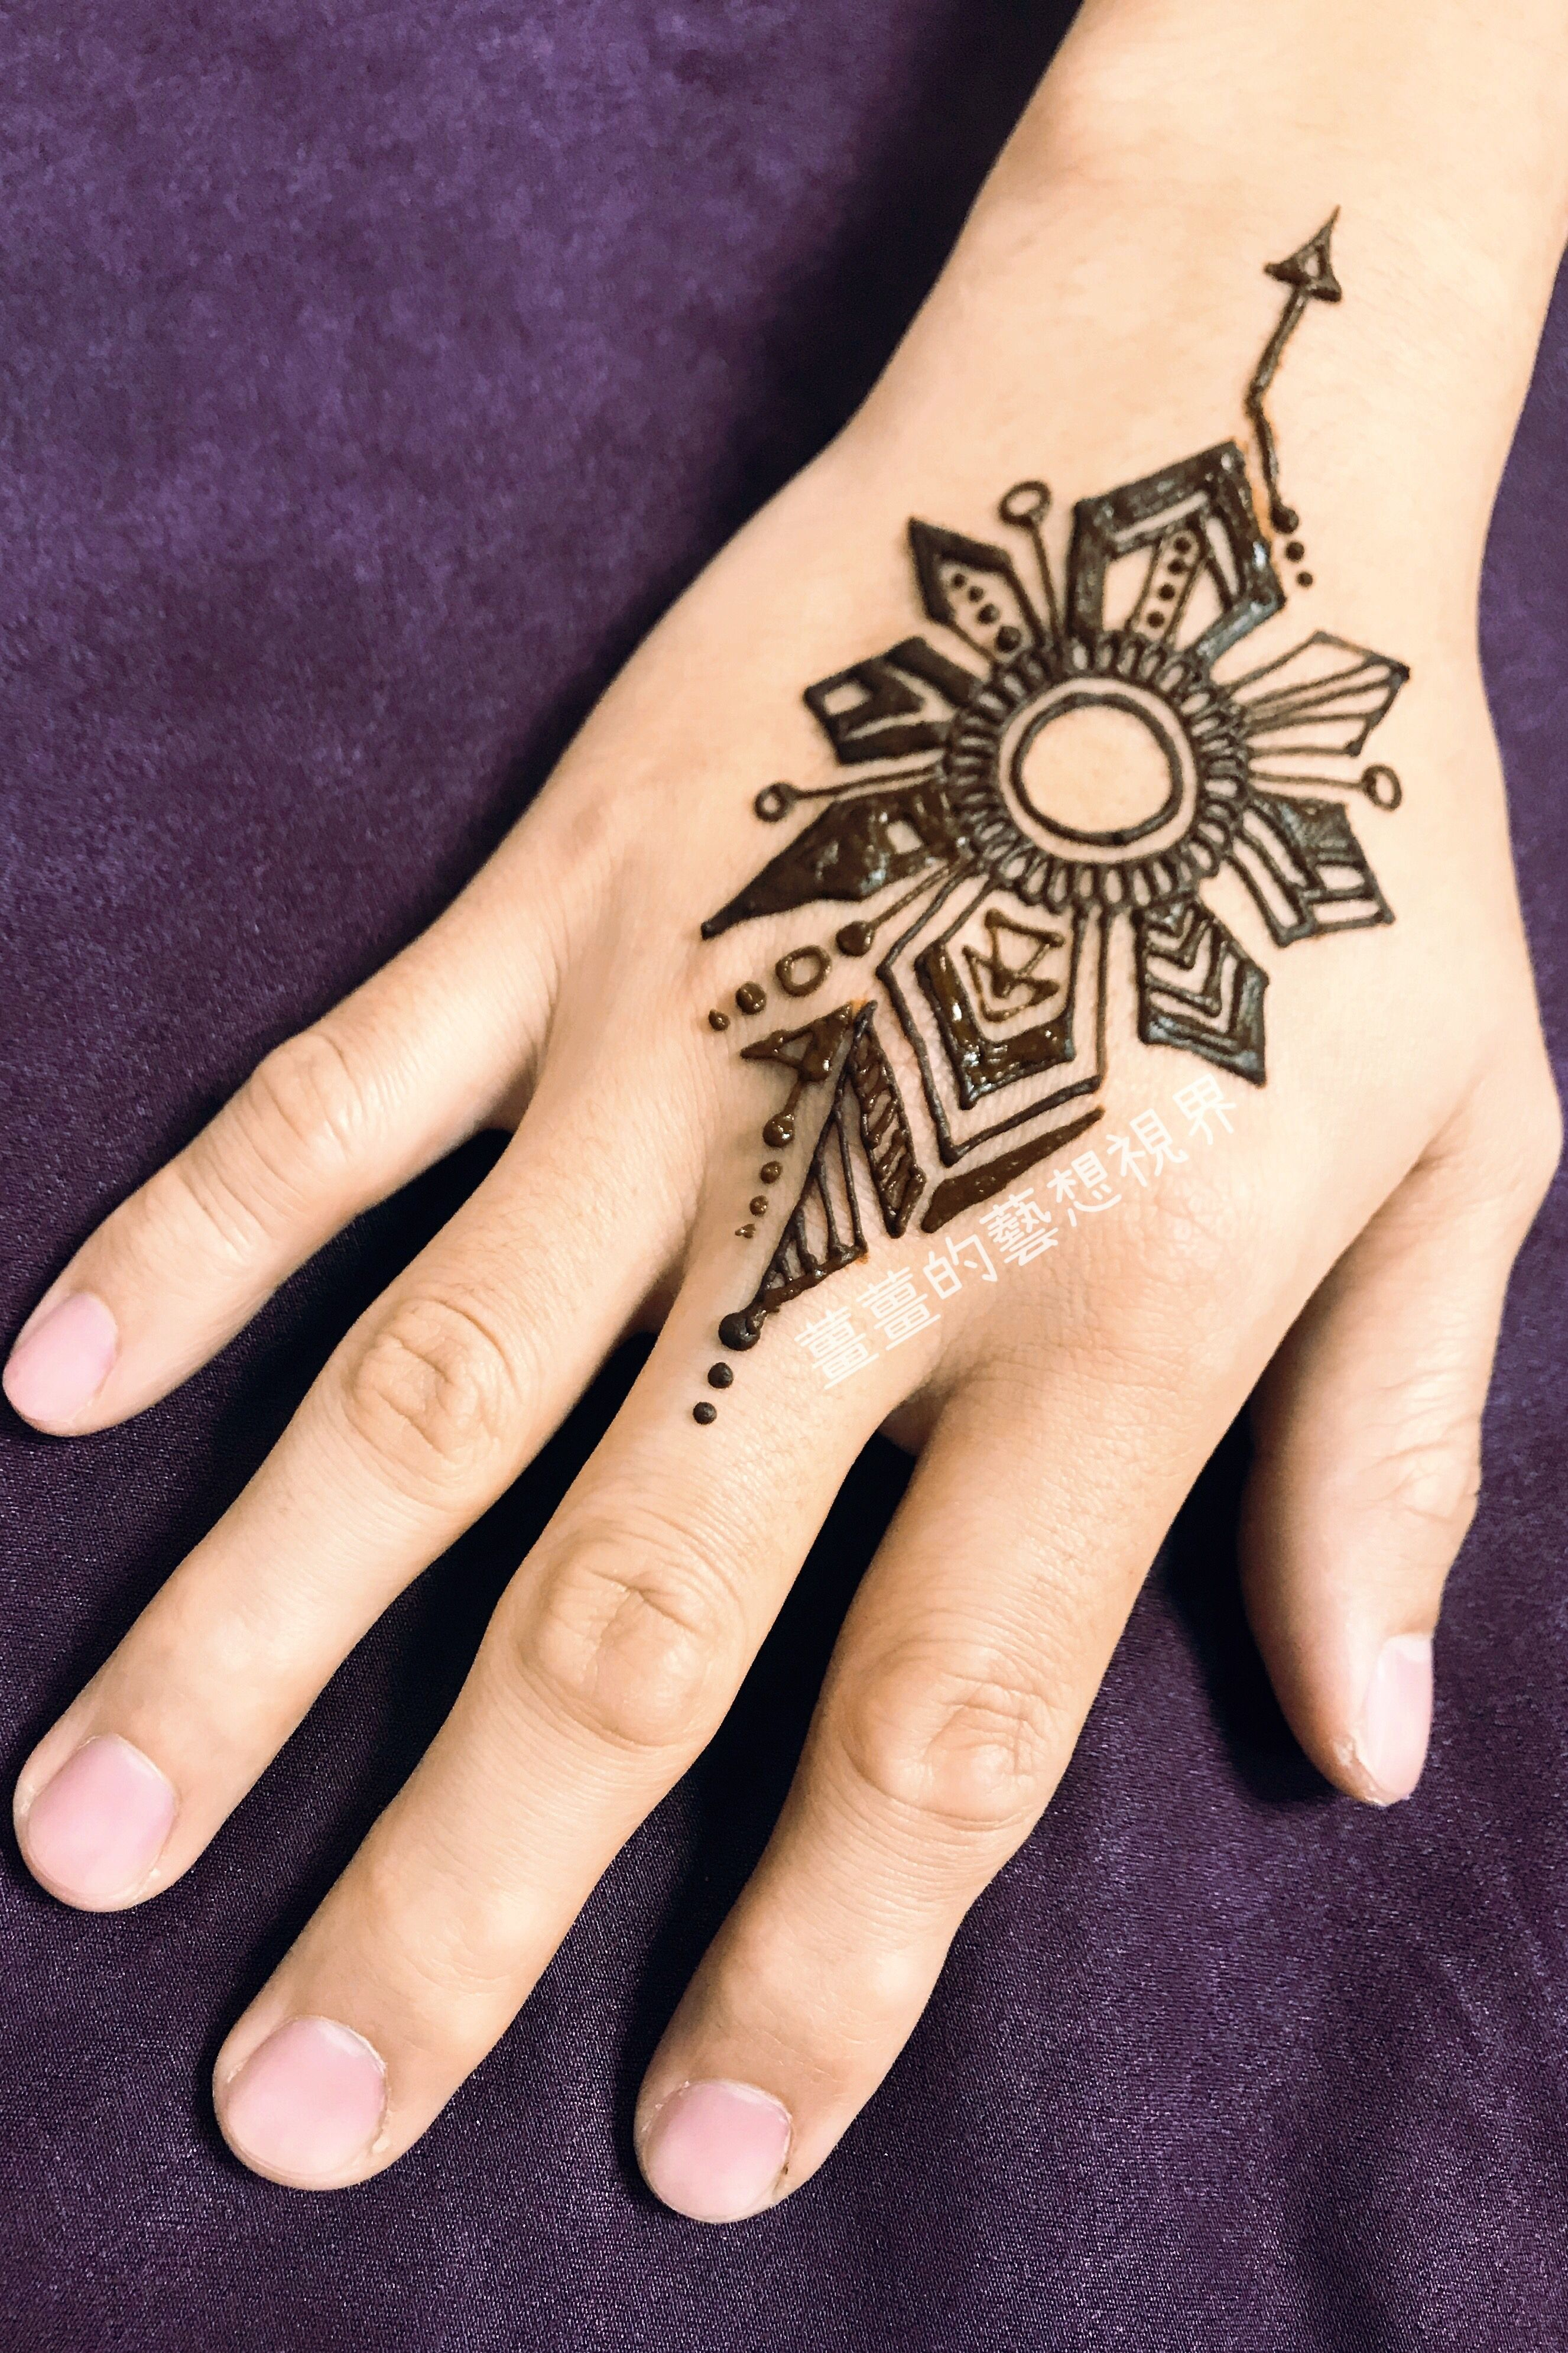 Pin by Ginger on 薑薑的藝想視界 Hand tattoos, Hand henna, Henna